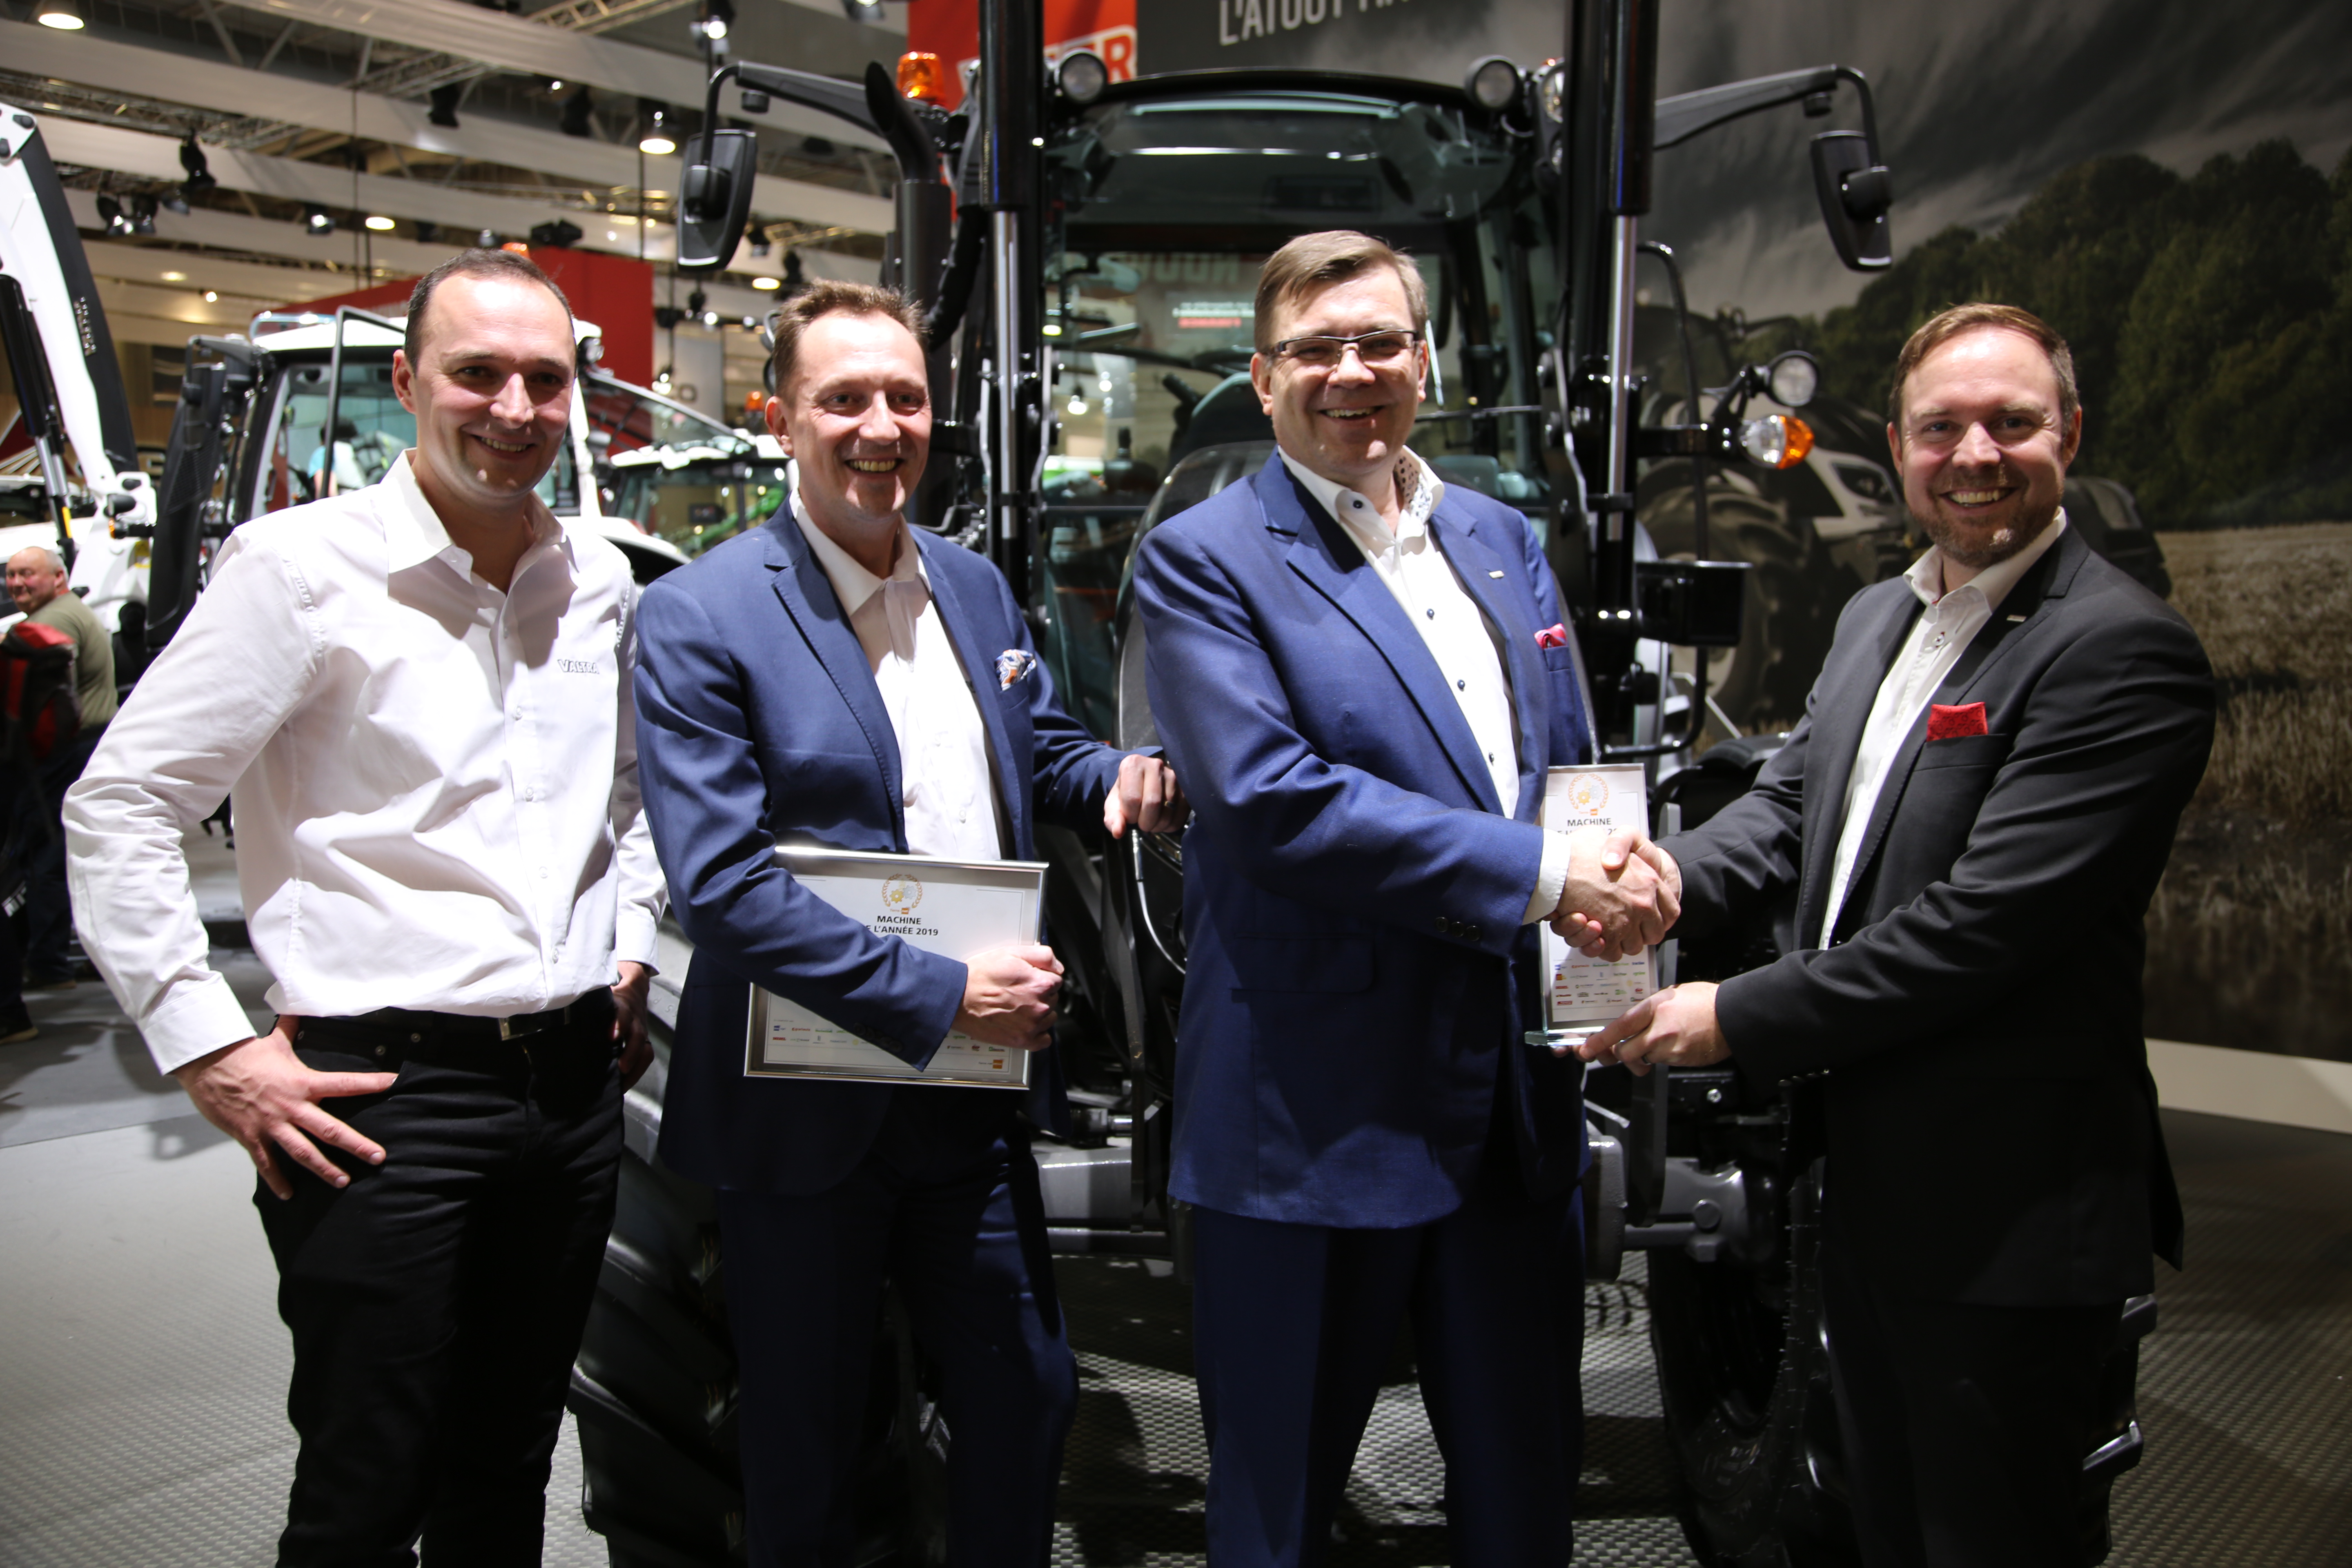 Die Maschine des Jahres wurde auf der SIMA Show in Paris verliehen. Von links nach rechts: Benoit Egon (Mitglied der Jury), Mikko Lehikoinen (VP Marketing, Valtra EME), Jari Rautjärvi (VP Managing Director, Valtra EME), Ville Mansikkamäki (Director, Sales Valtra EME), Alexandre Chantrelle (National Sales Manager, Valtra France) and Dieter Dänzer (Mitglied der Jury).